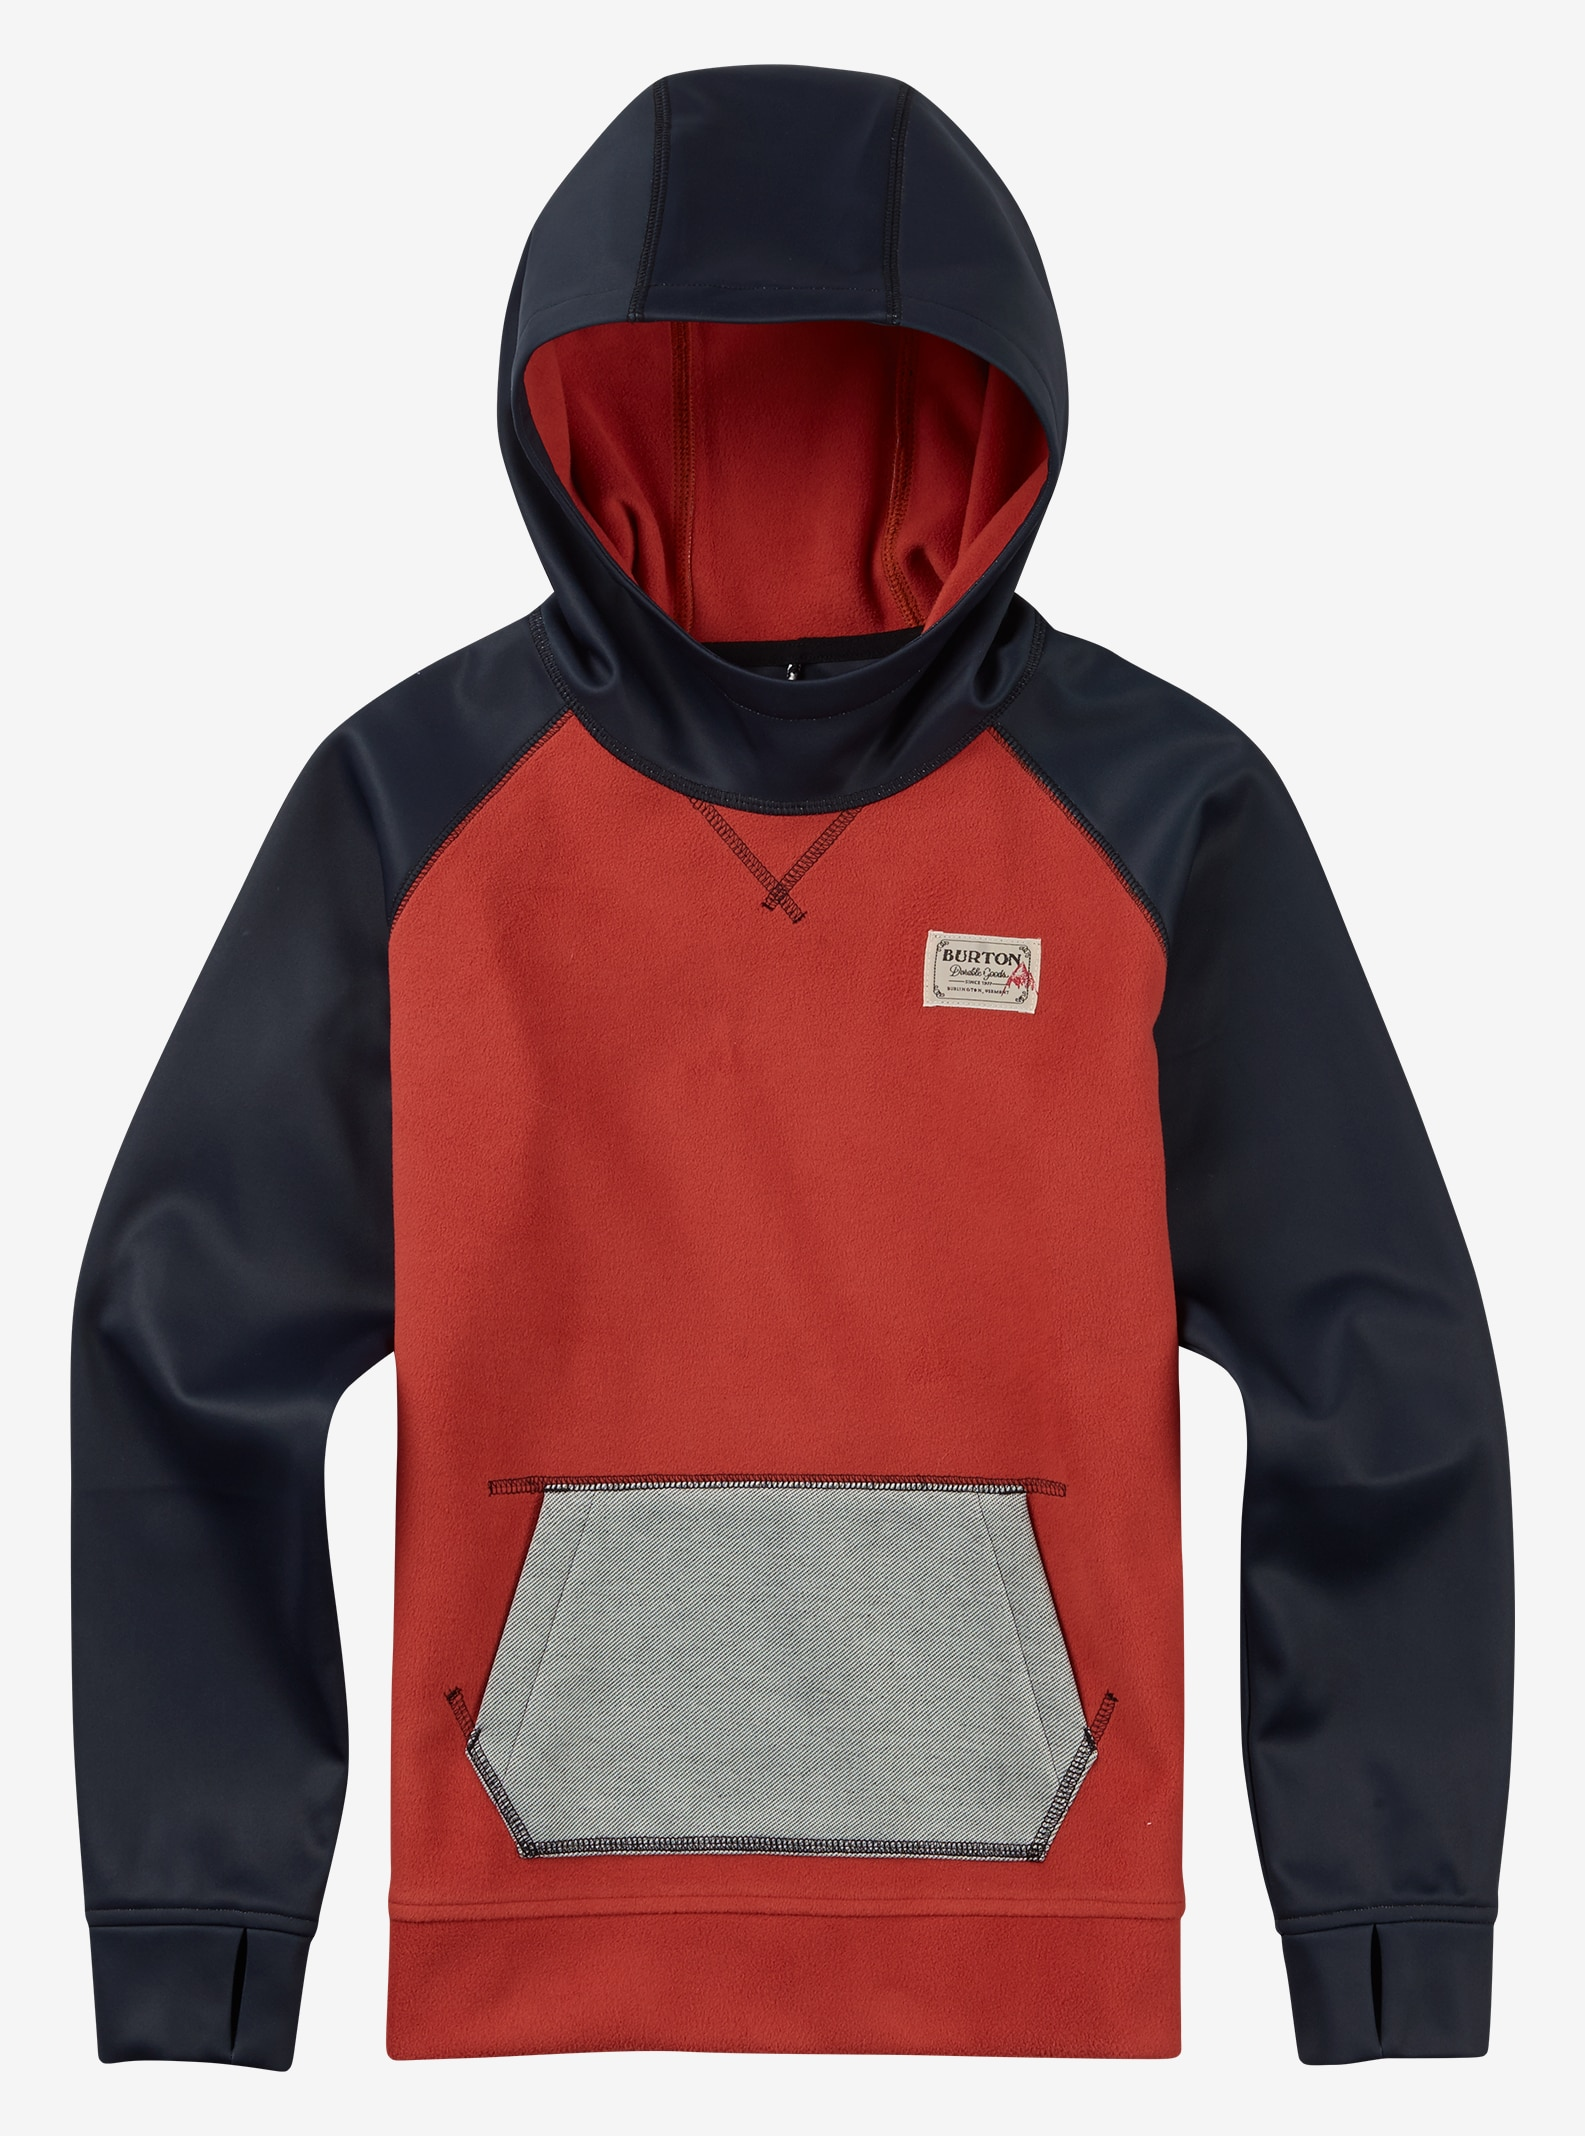 Burton Boys' Crown Bonded Pullover Hoodie shown in Tandori / Eclipse